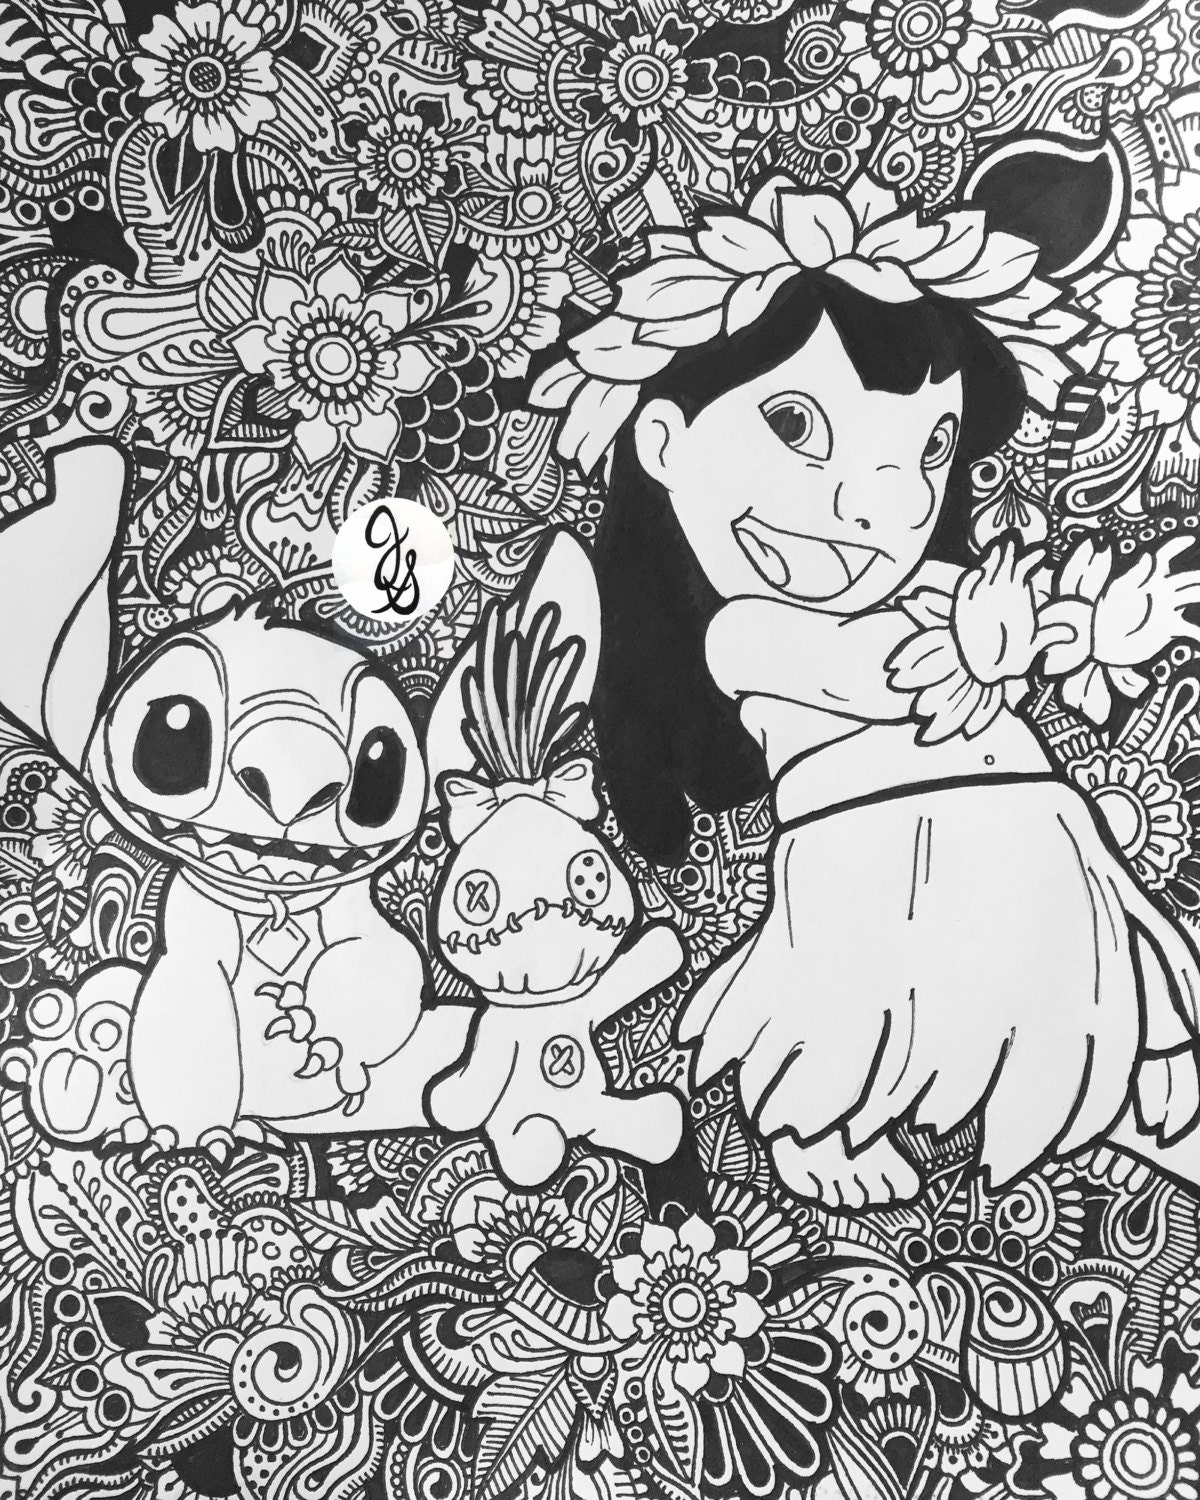 Coloring Pages For Adults: Lilo And Stitch Floral Design